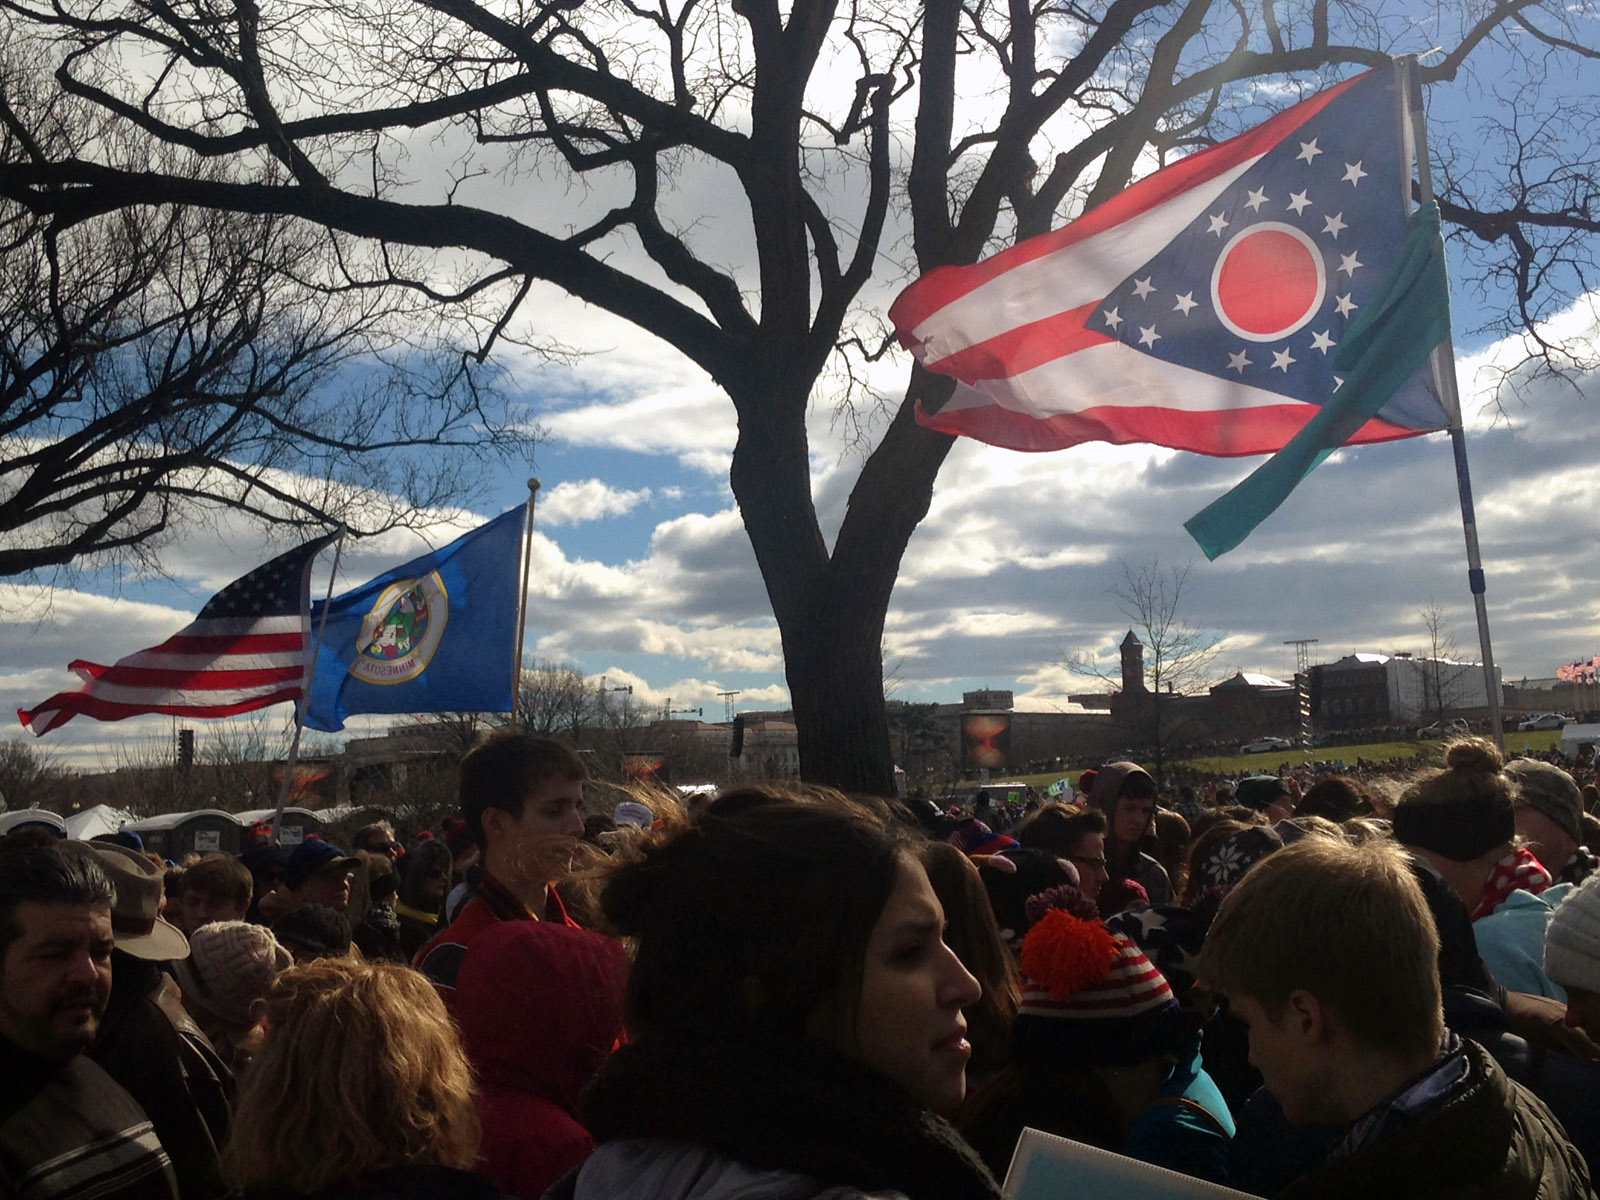 The state flags of Pennsylvania and Ohio flap in the wind at the March for Life on the National Mall on Friday, Jan. 27, 2017. (WTOP/Megan Cloherty)